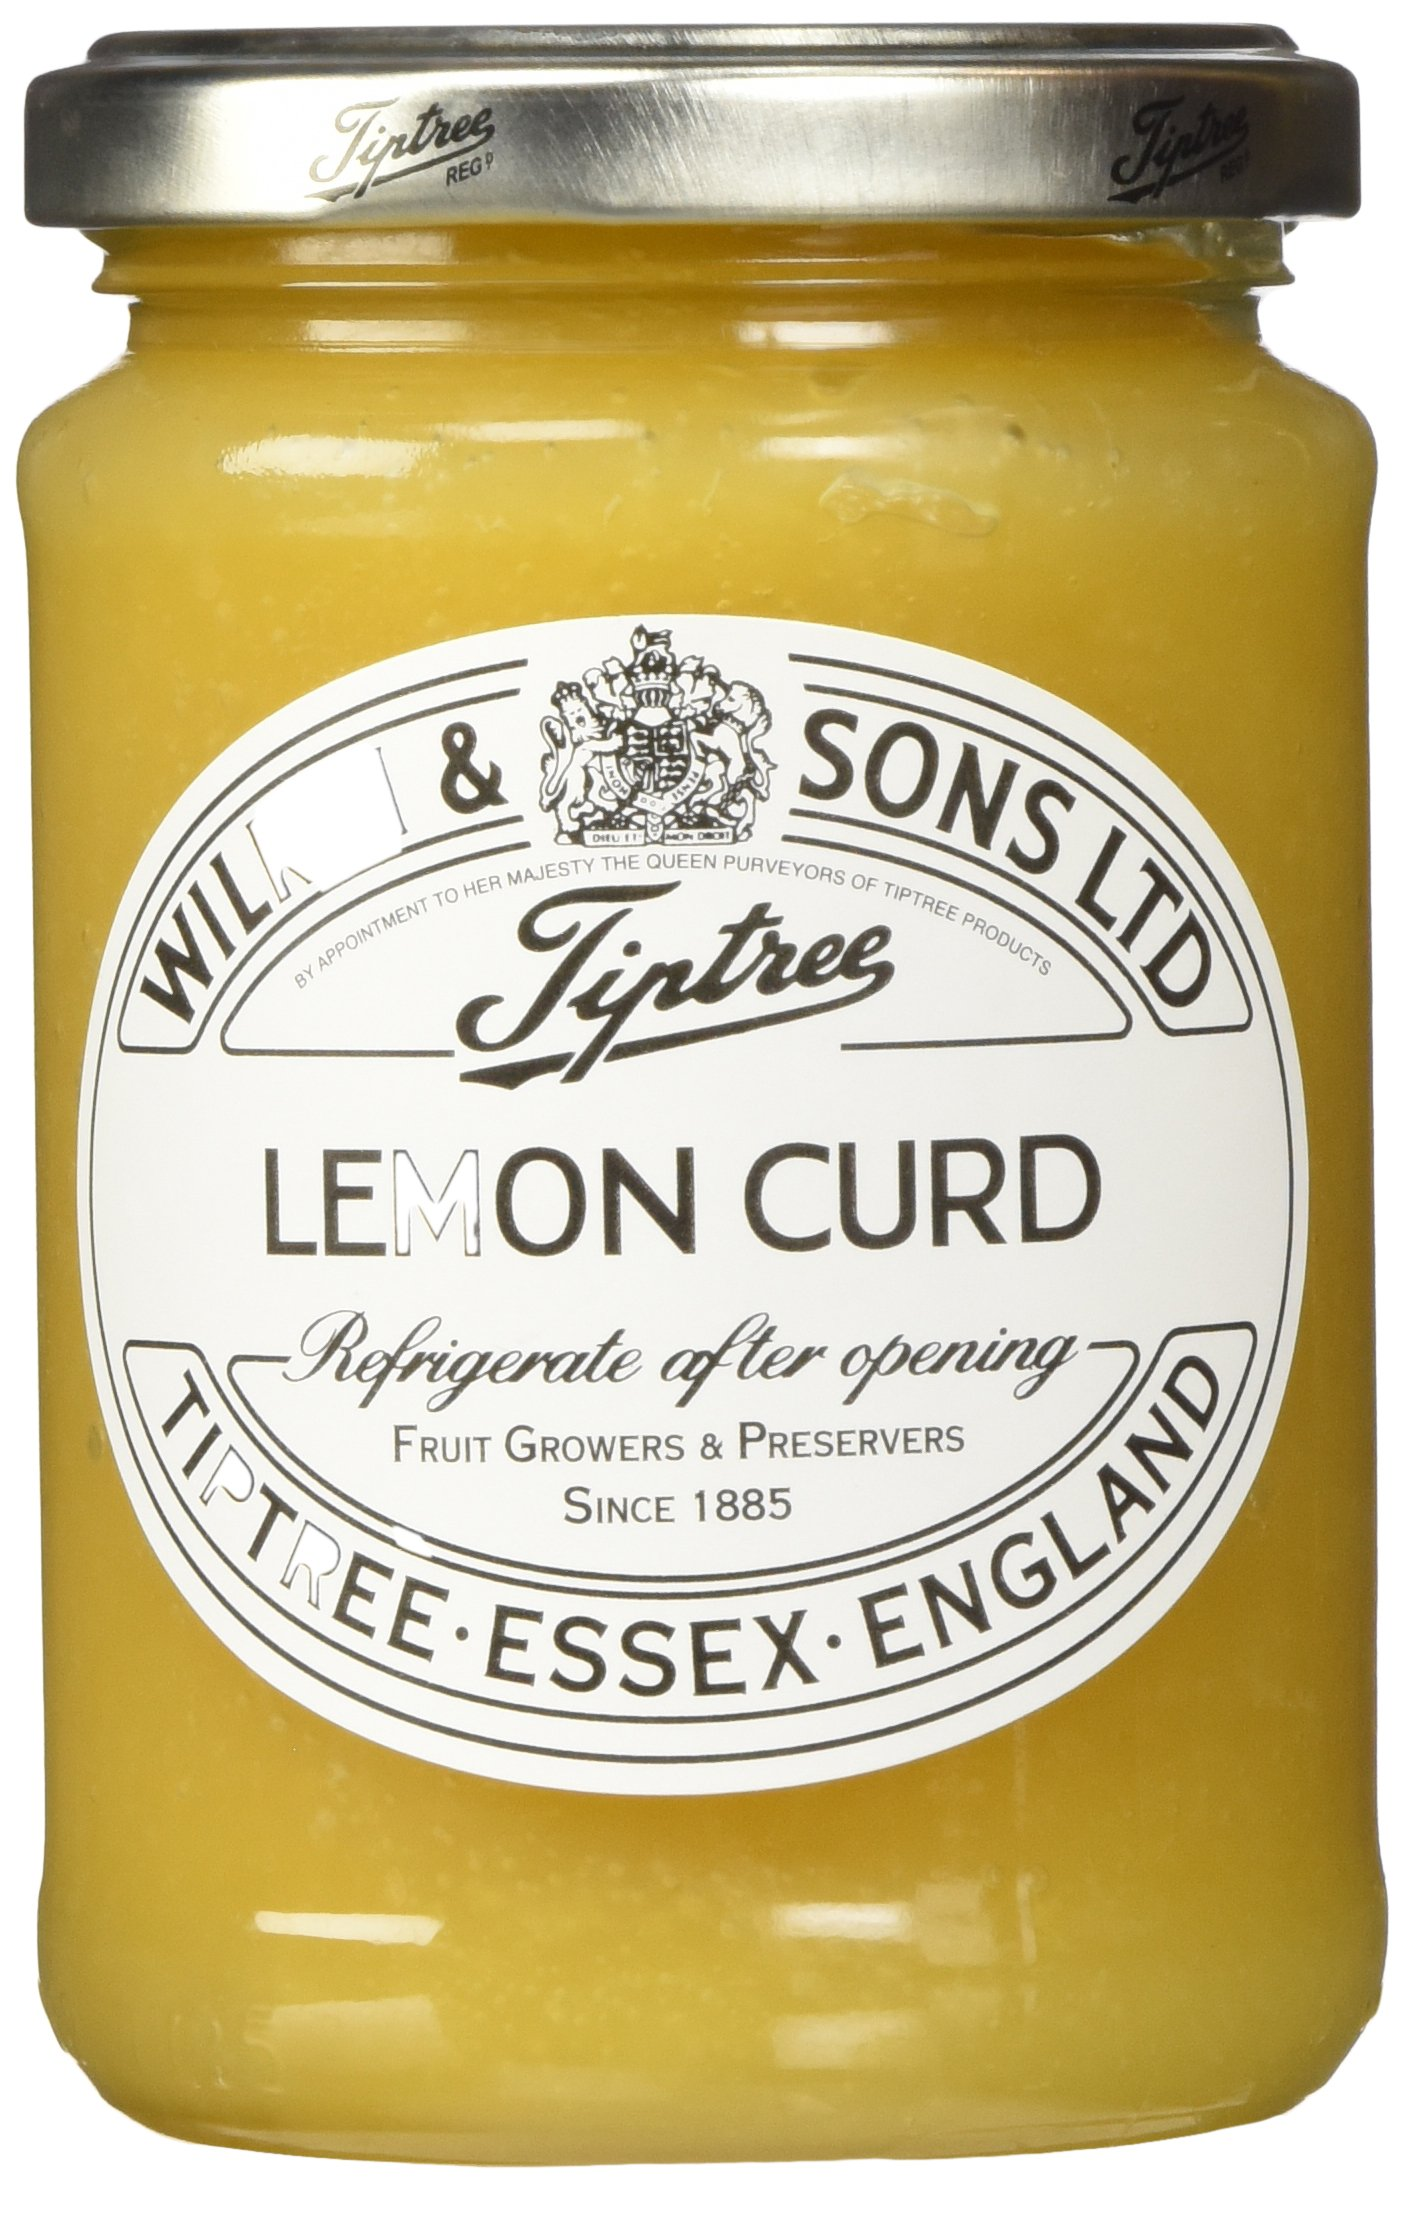 Tiptree Lemon Curd, 11 Ounce Jars (Pack of 2)